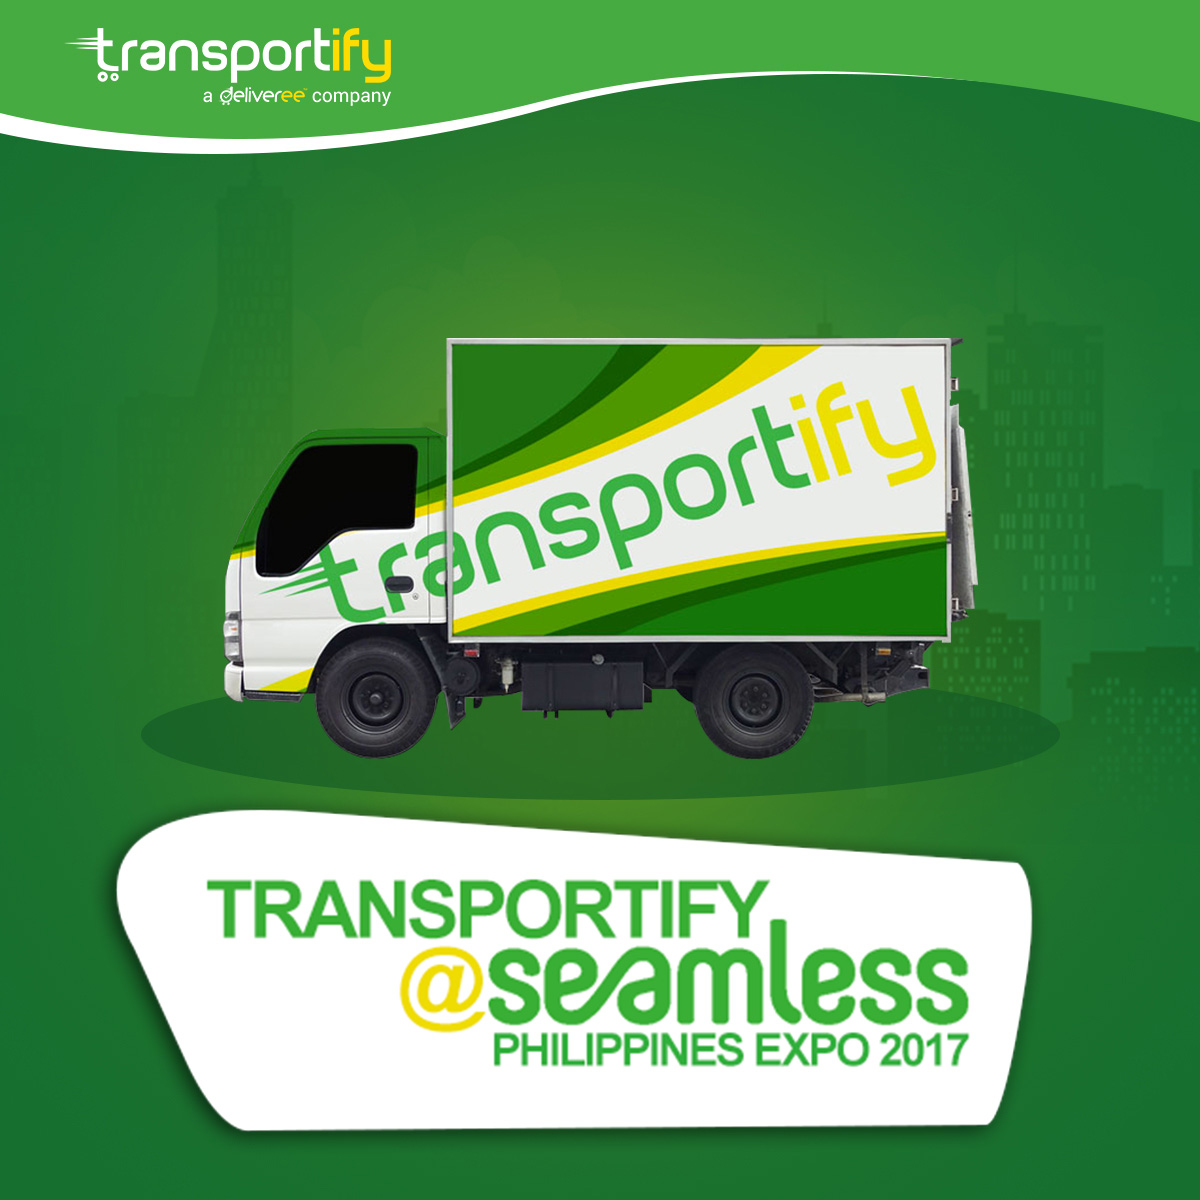 lalamove, grab express, transportify philippones, delivery app, delivery service, seamless 2017